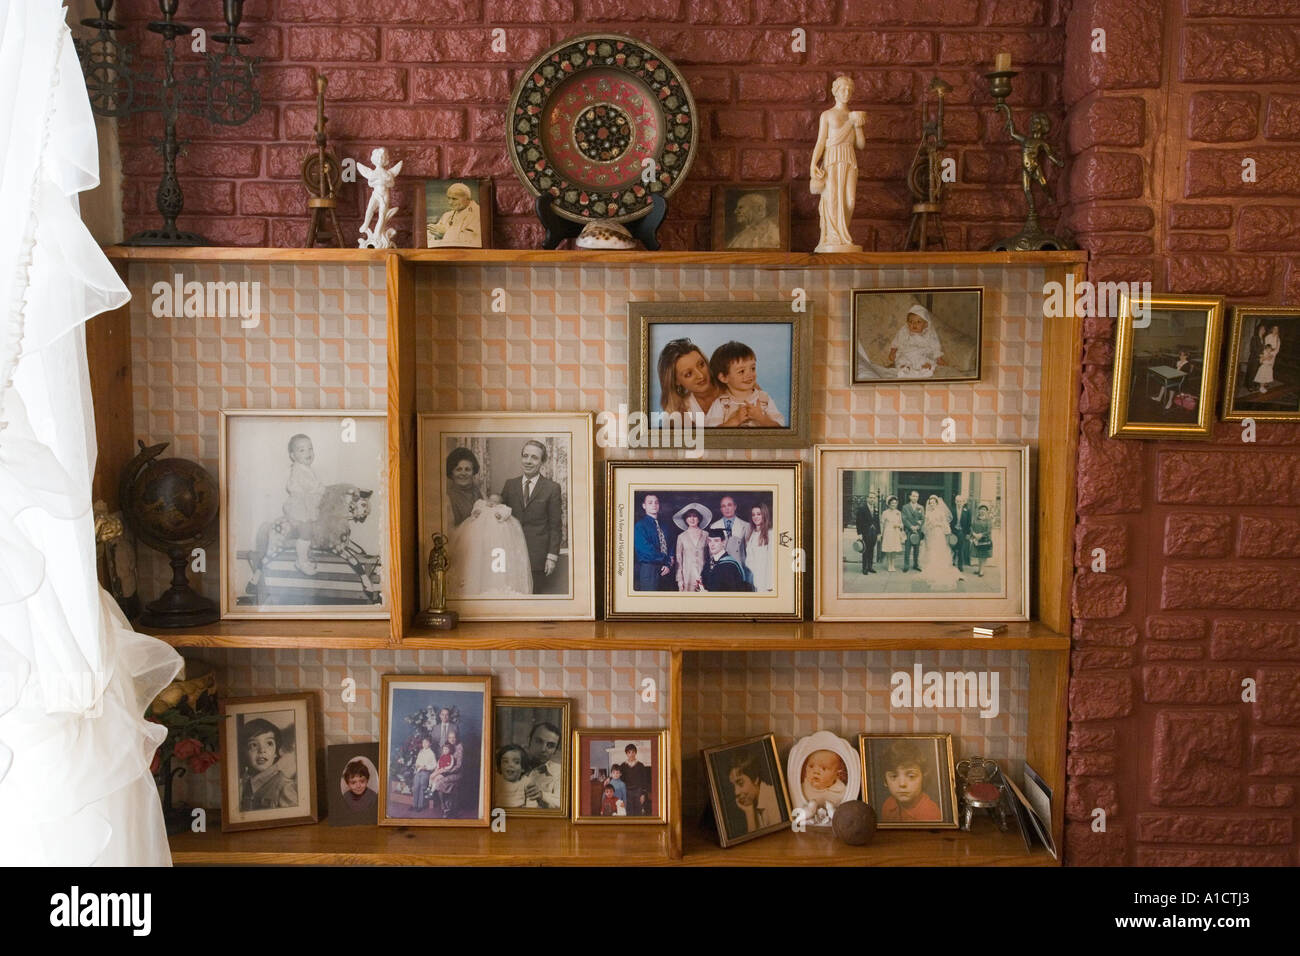 Still Life Of Framed Photographs And Statuettes In A Shelf Placed